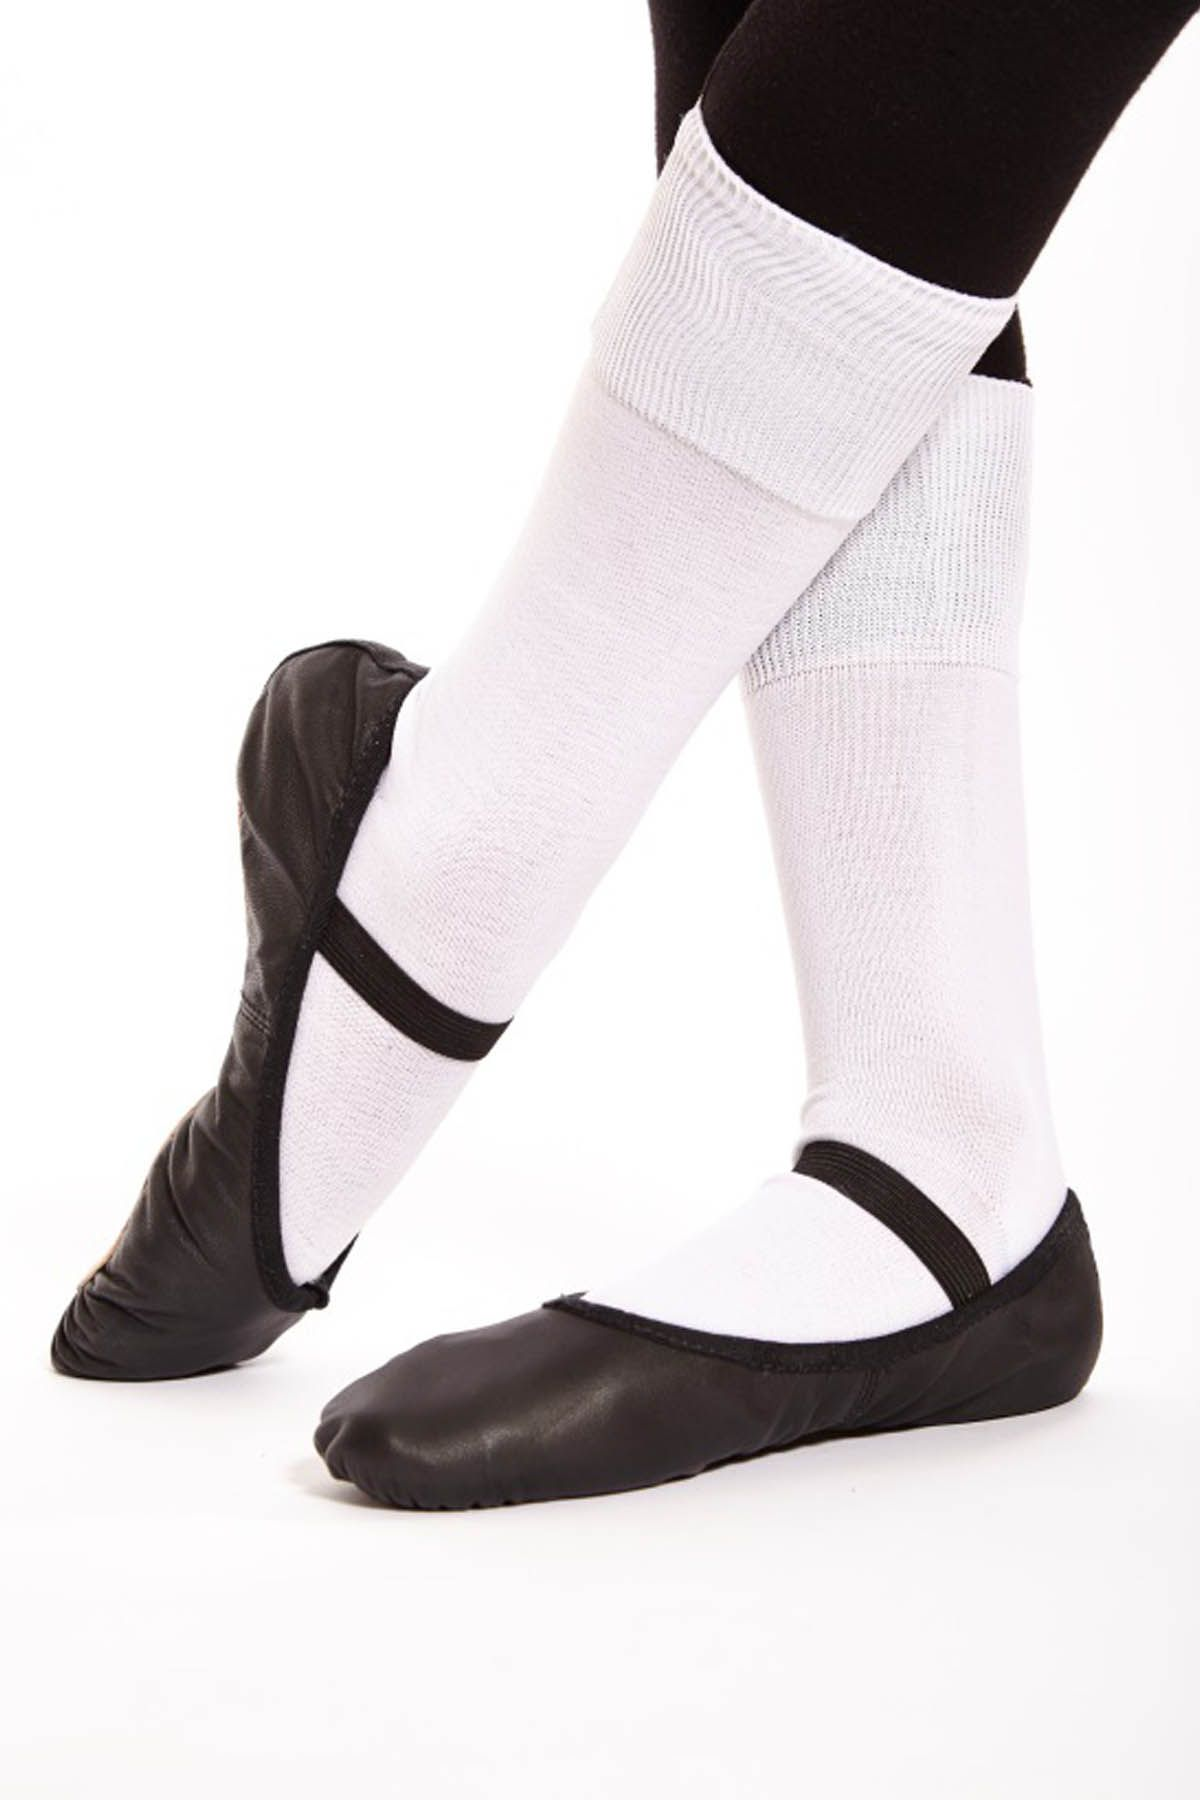 Uniform Black Ballet Shoes (IDS LBS)